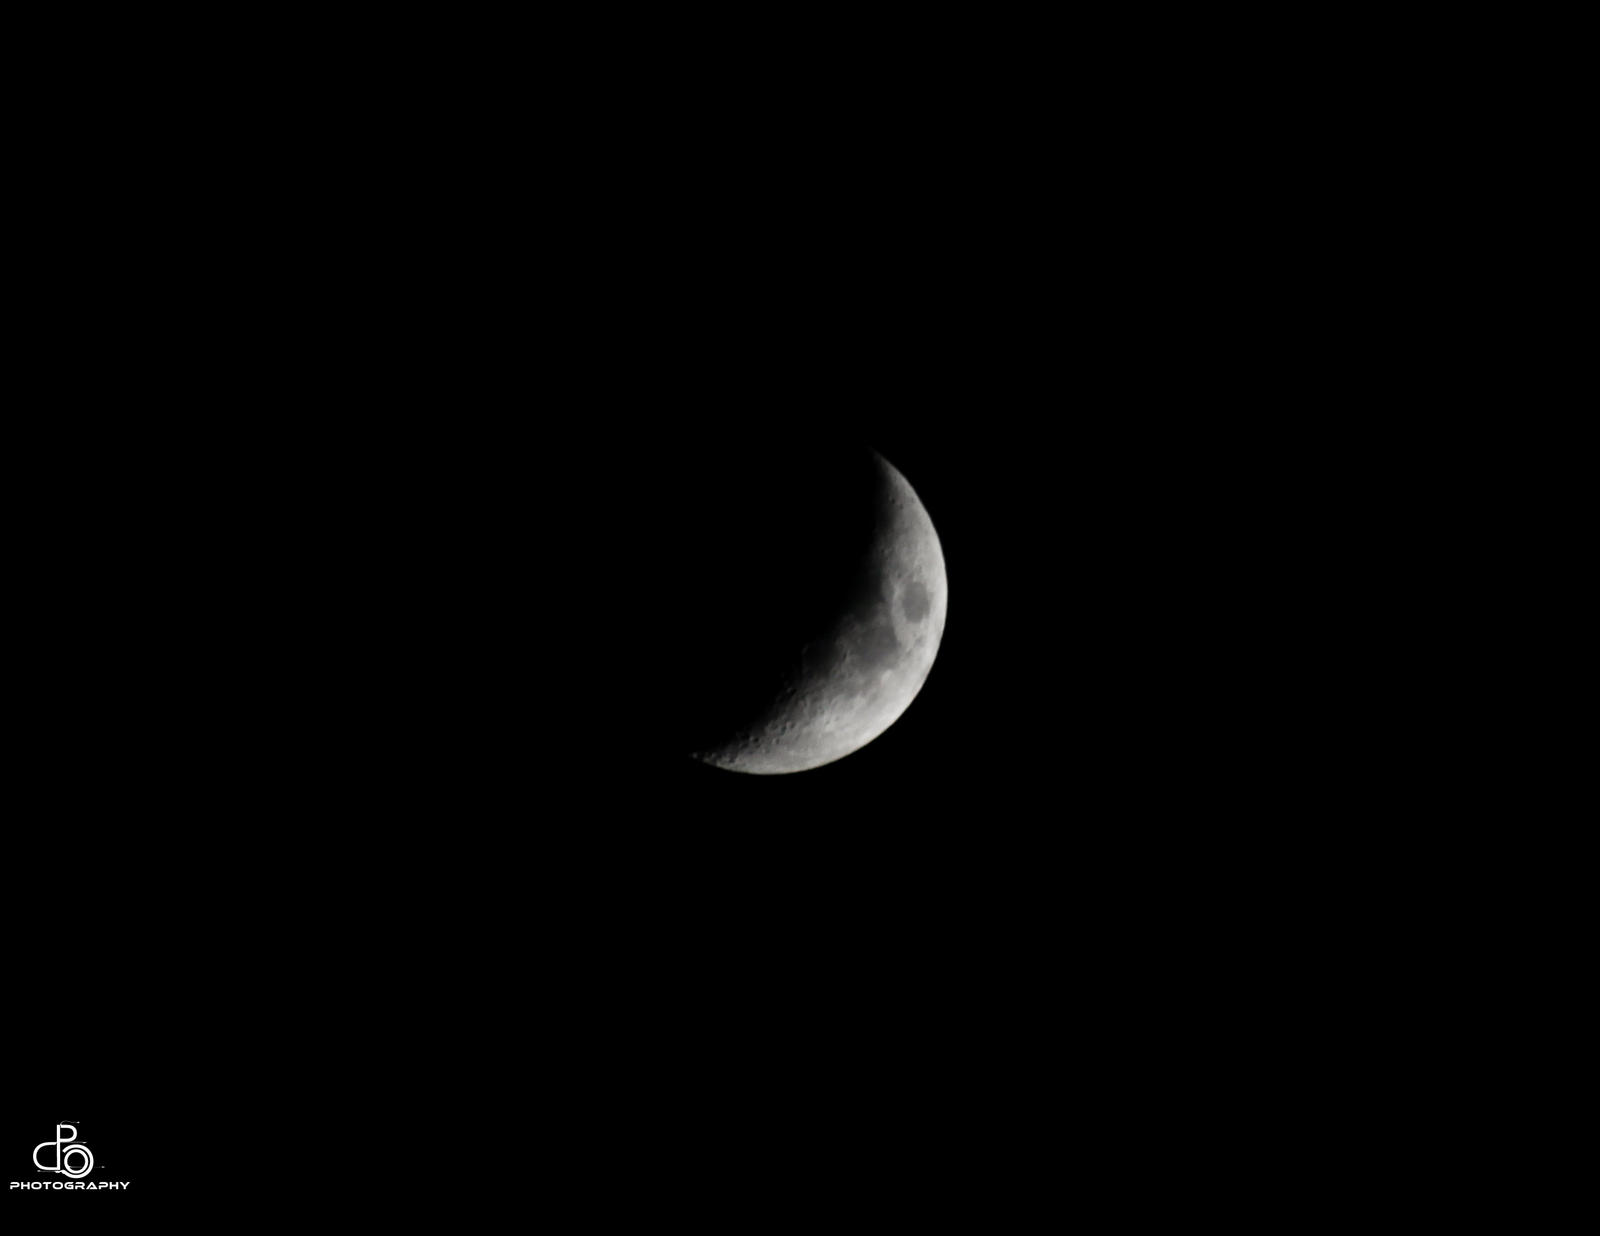 The moon by DraconPhotography